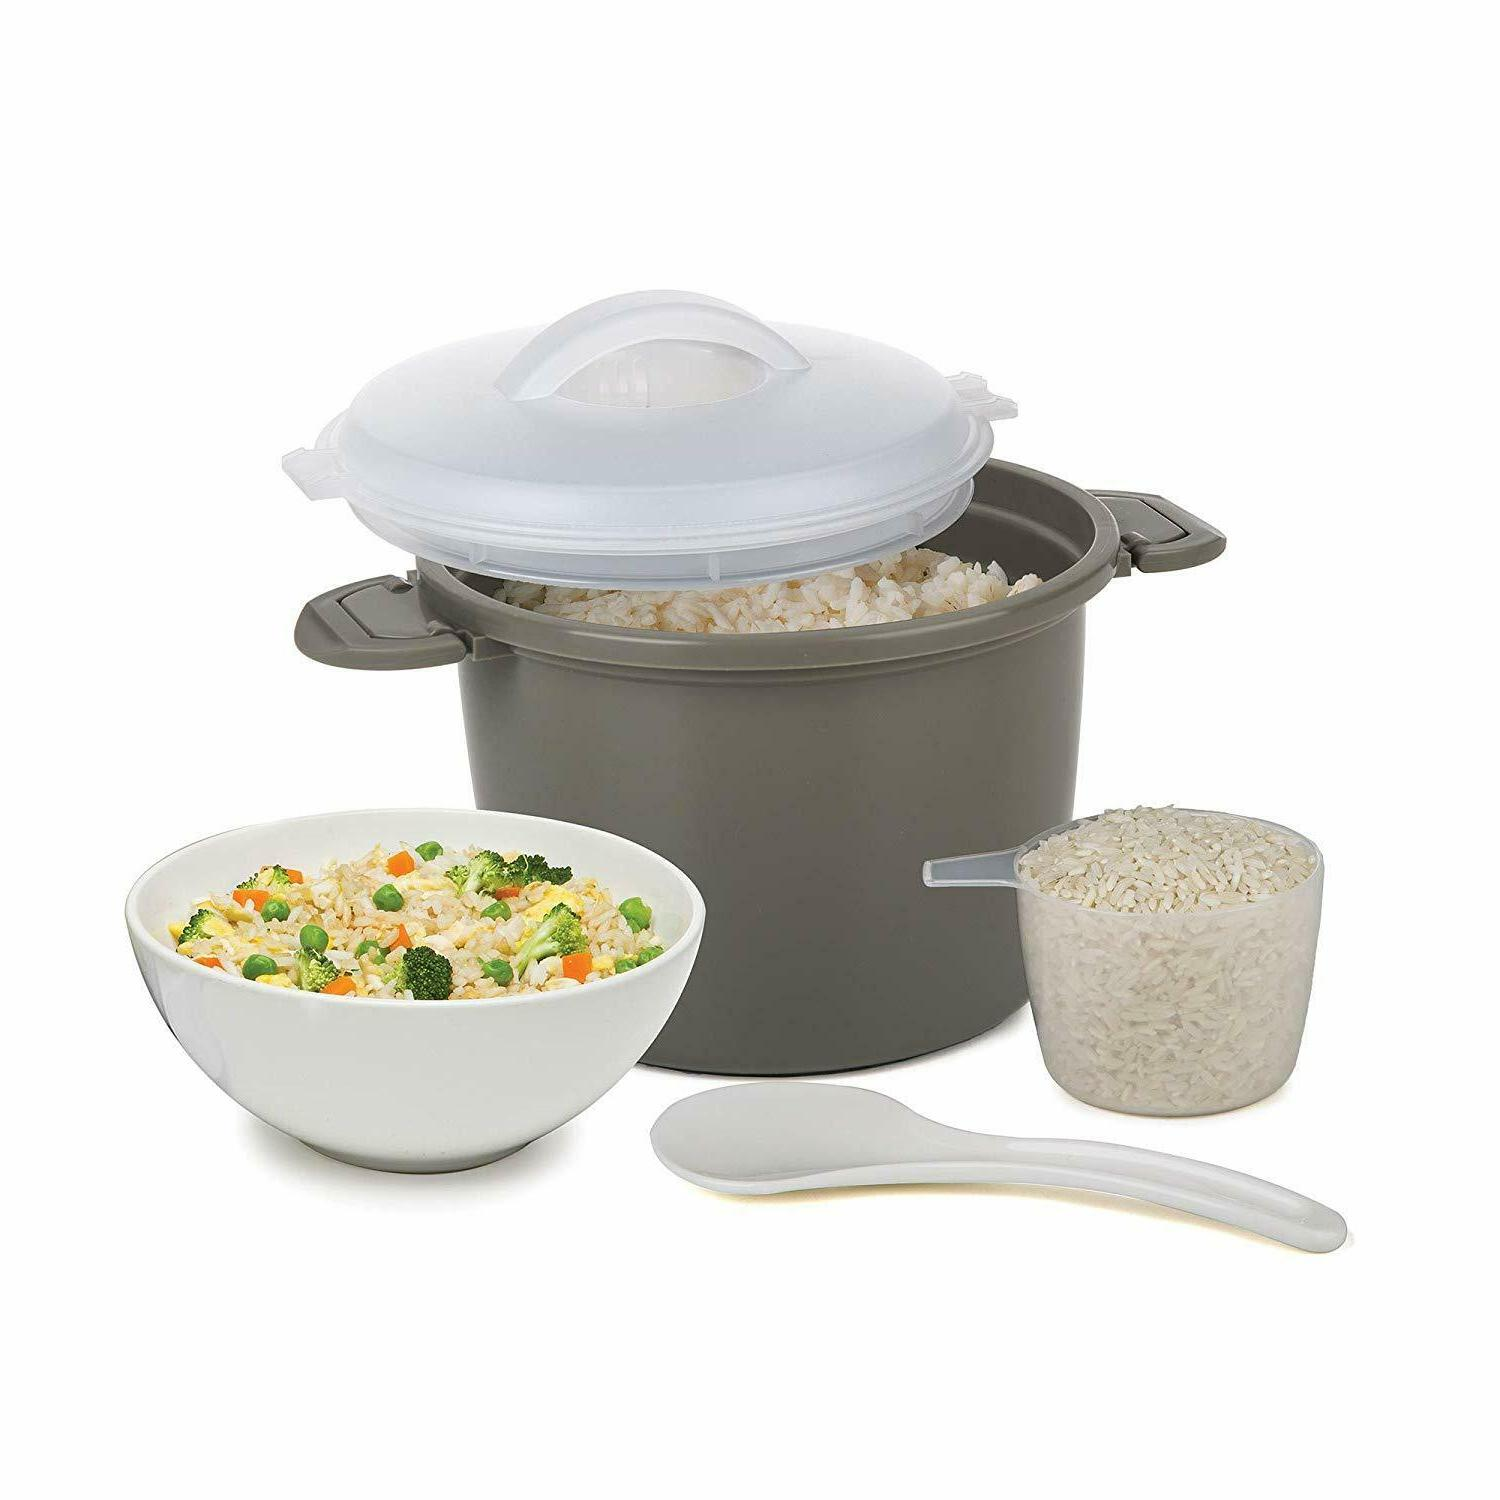 microwave rice cooker sets made of high